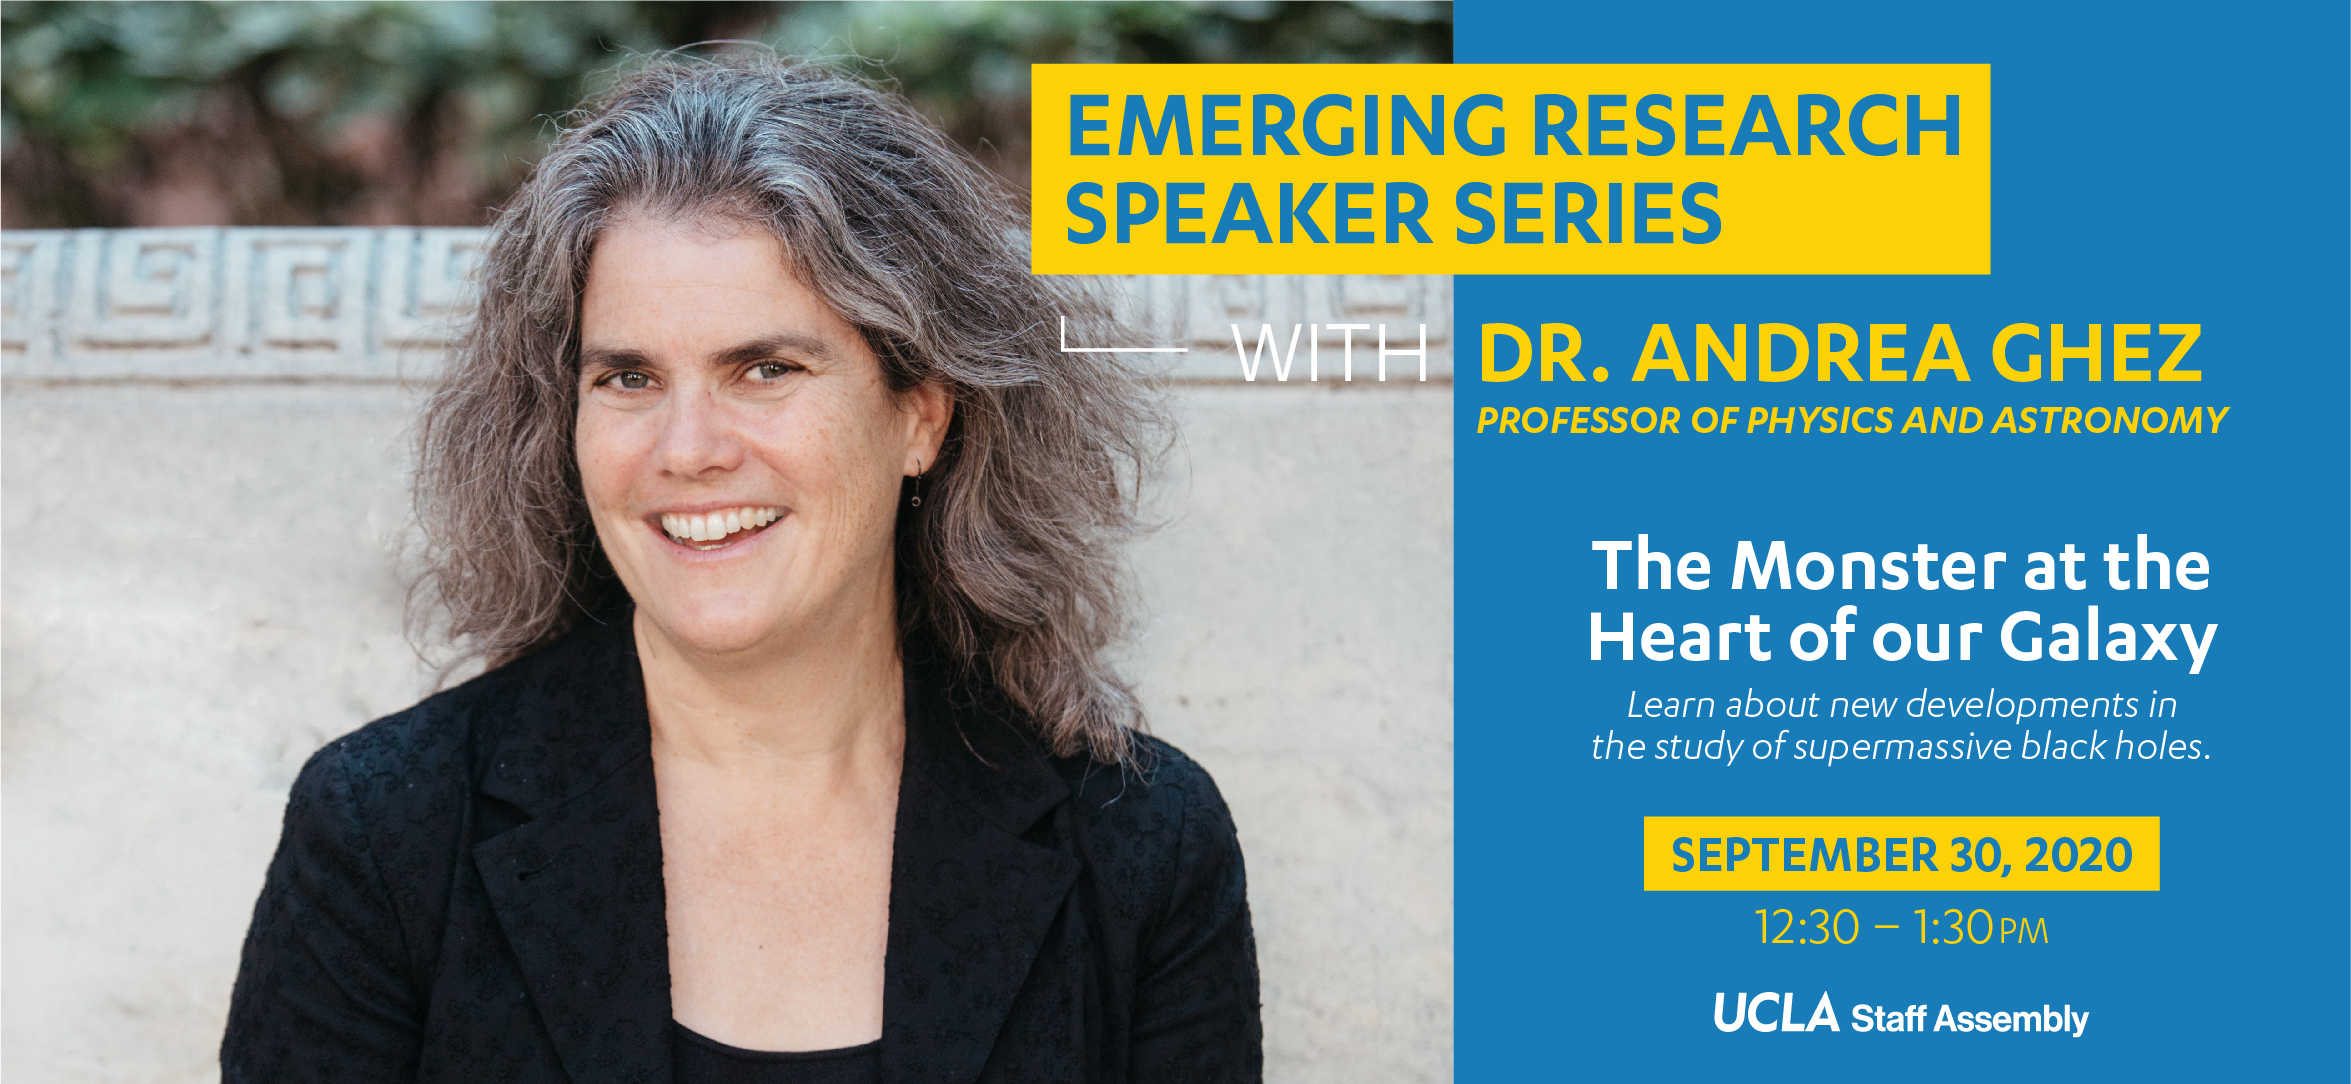 Emerging Research Speaker Series with Dr. Andrea Ghez